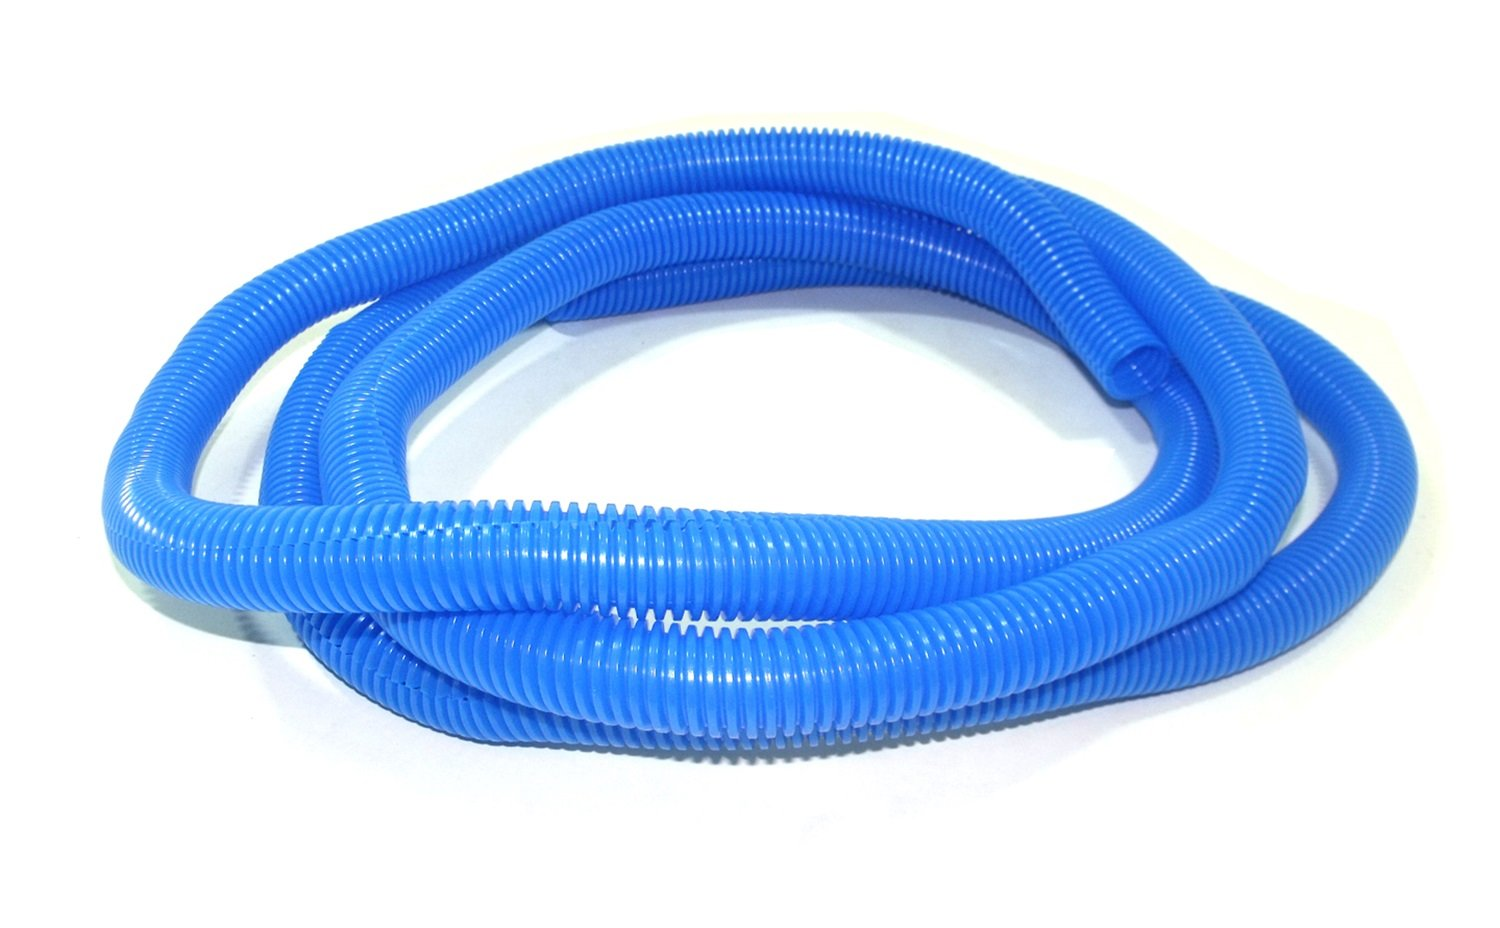 Taylor Cable 38762 Blue Convoluted Tubing